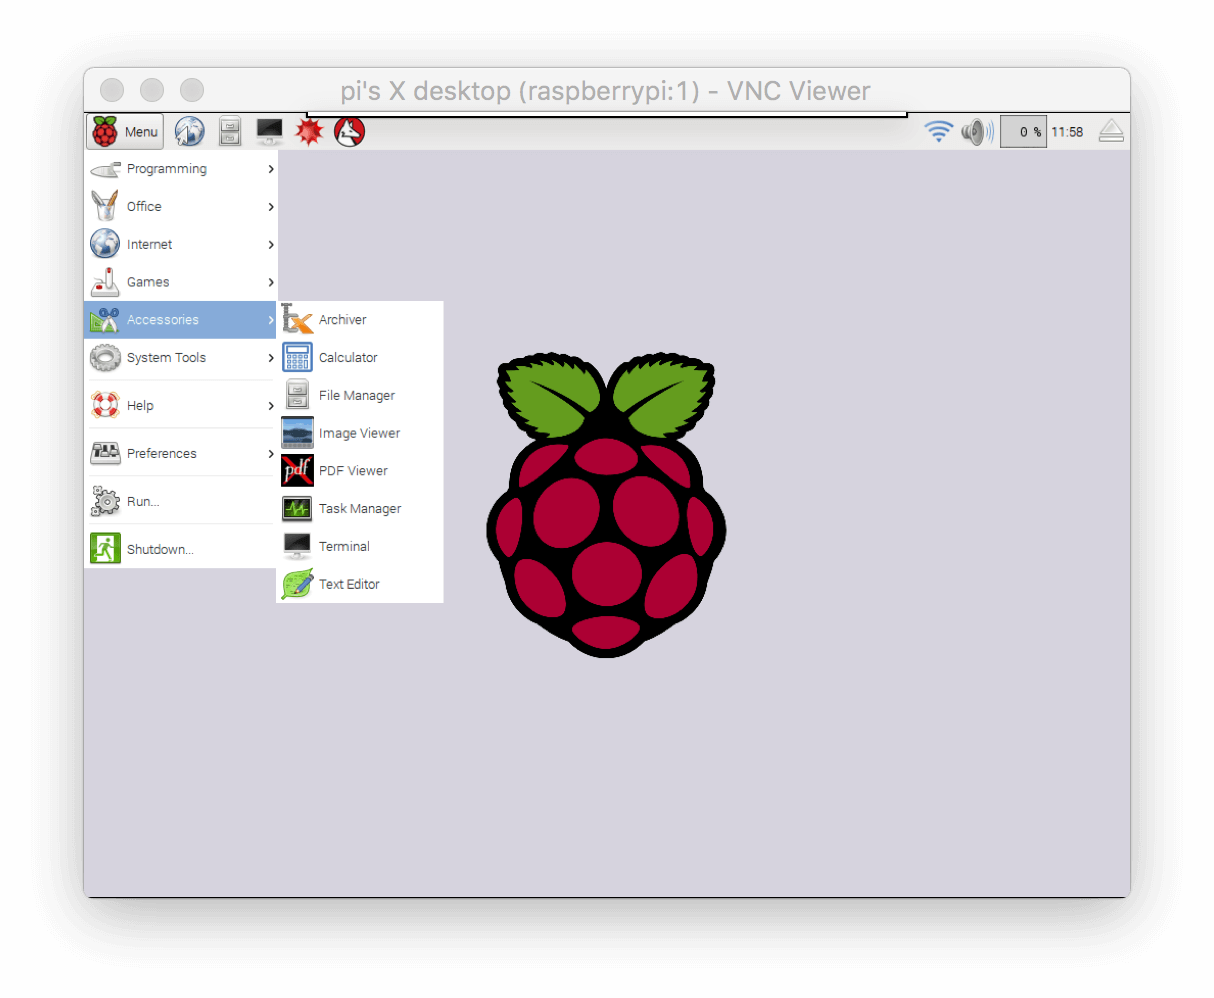 Raspbian Desktop User Interface